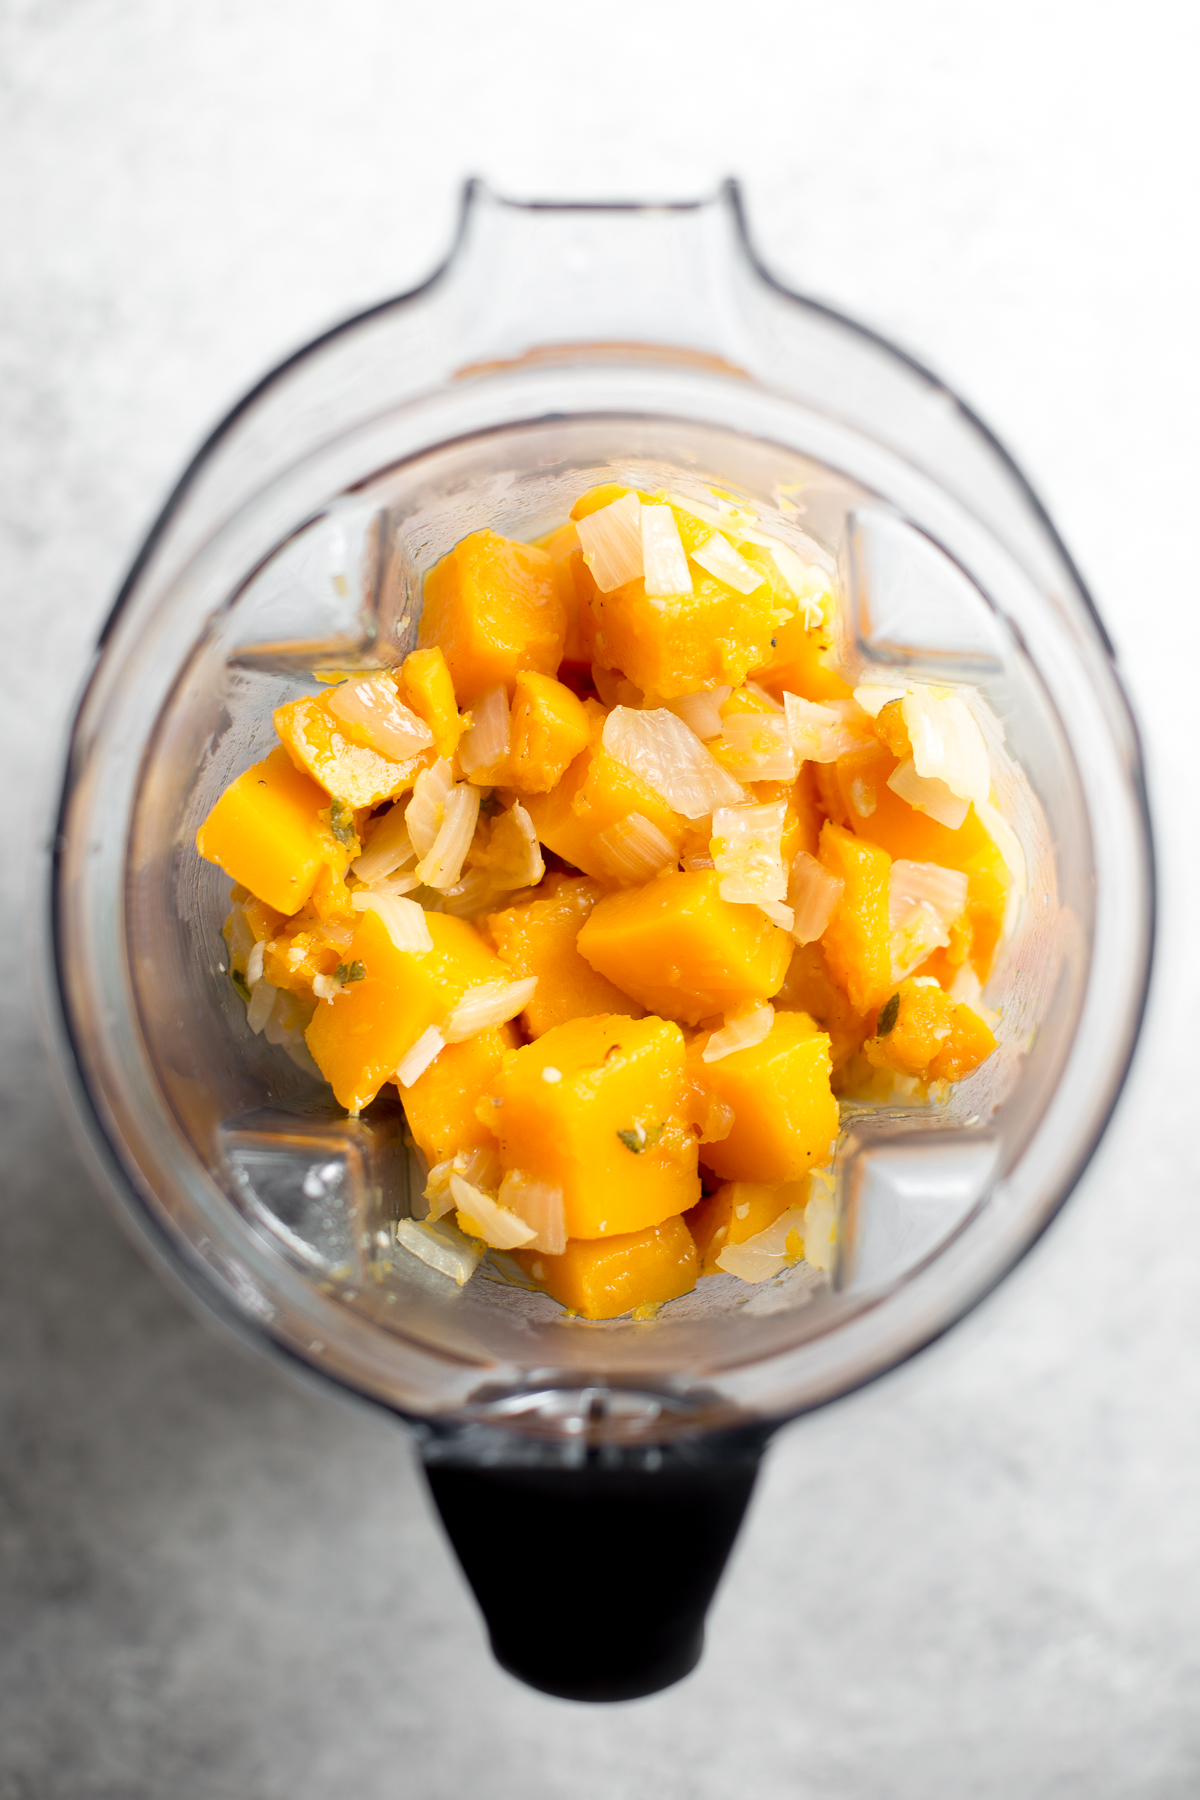 ingredients for butternut squash sauce in a blender